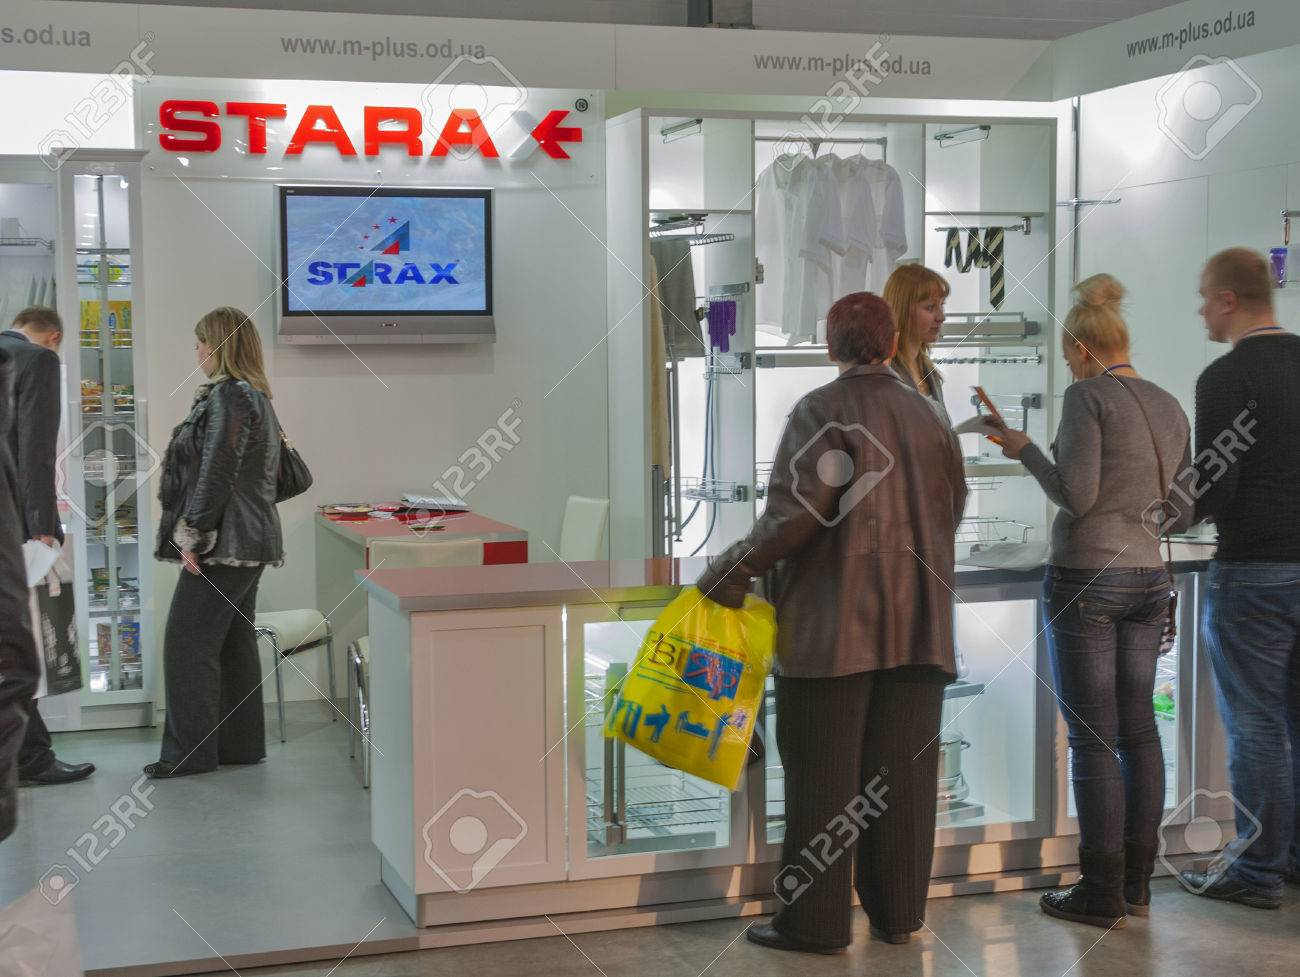 Exhibition Booth Accessories : Visitors visit starax furniture accessories turkish company booth